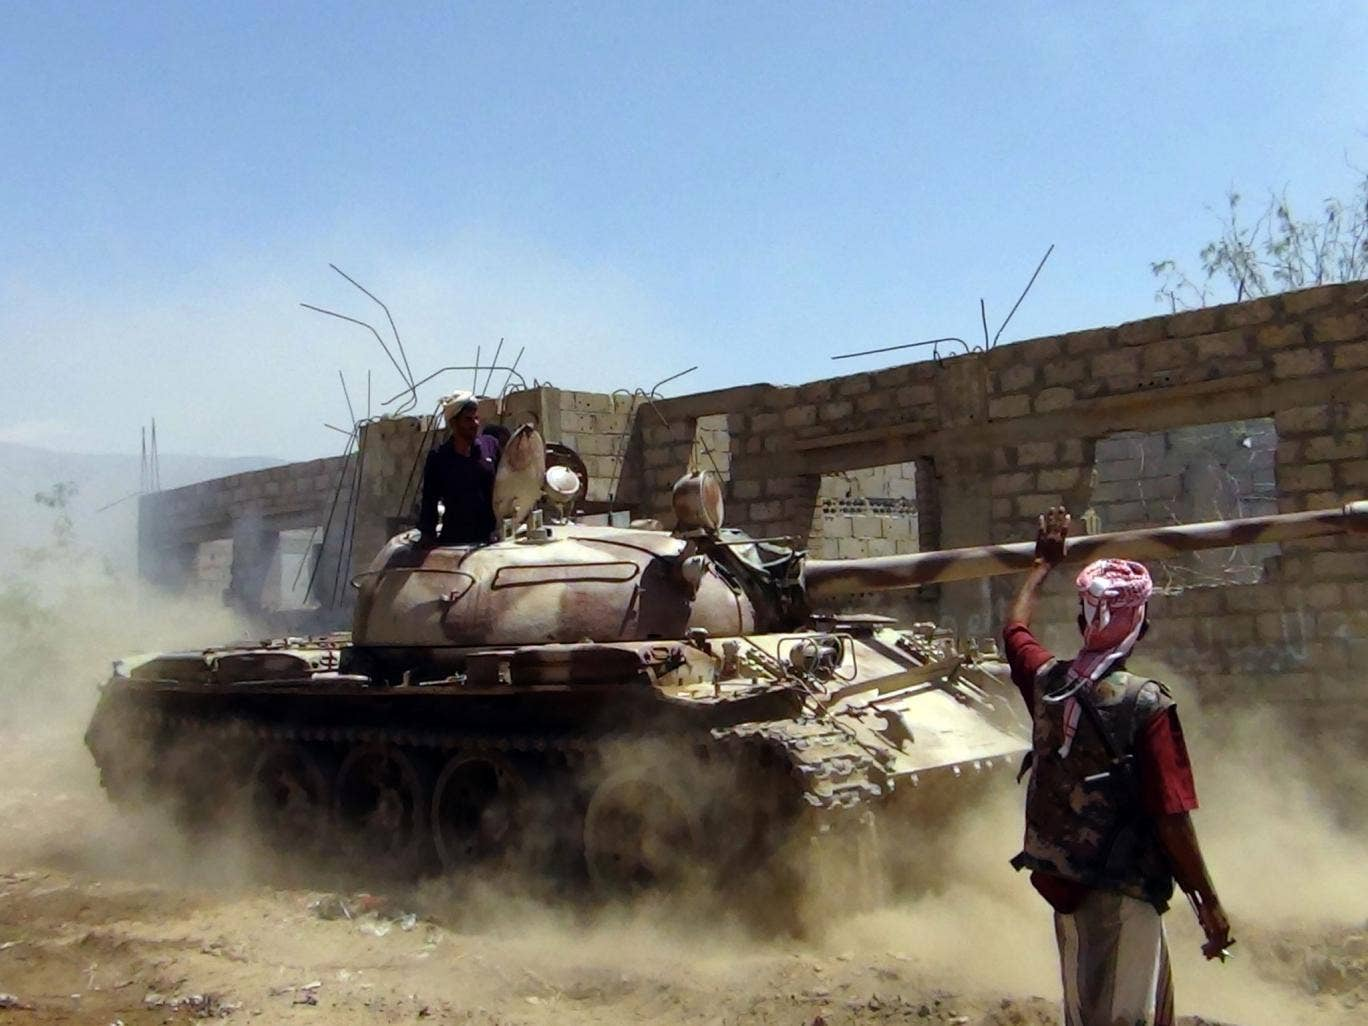 Yemen is racked by lawlessness and violence